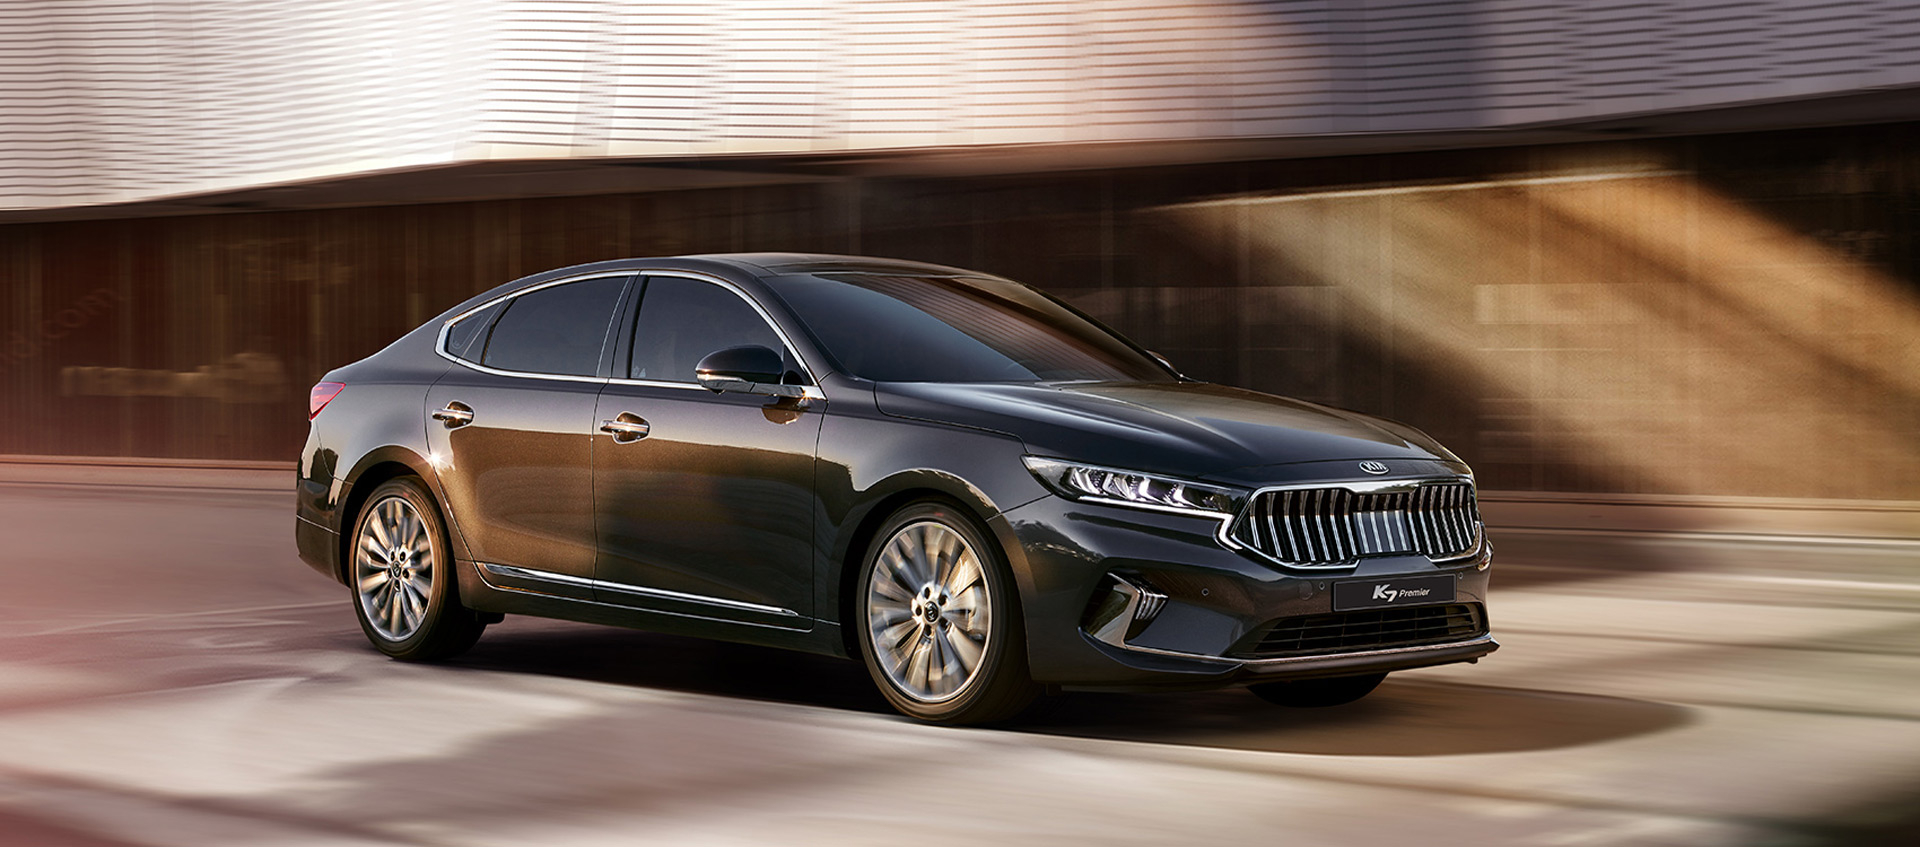 Kia Reveals Upmarket Look For Refreshed 2020 Cadenza - Kia Cadenza 2022 Test Drive Color Options, Redesign